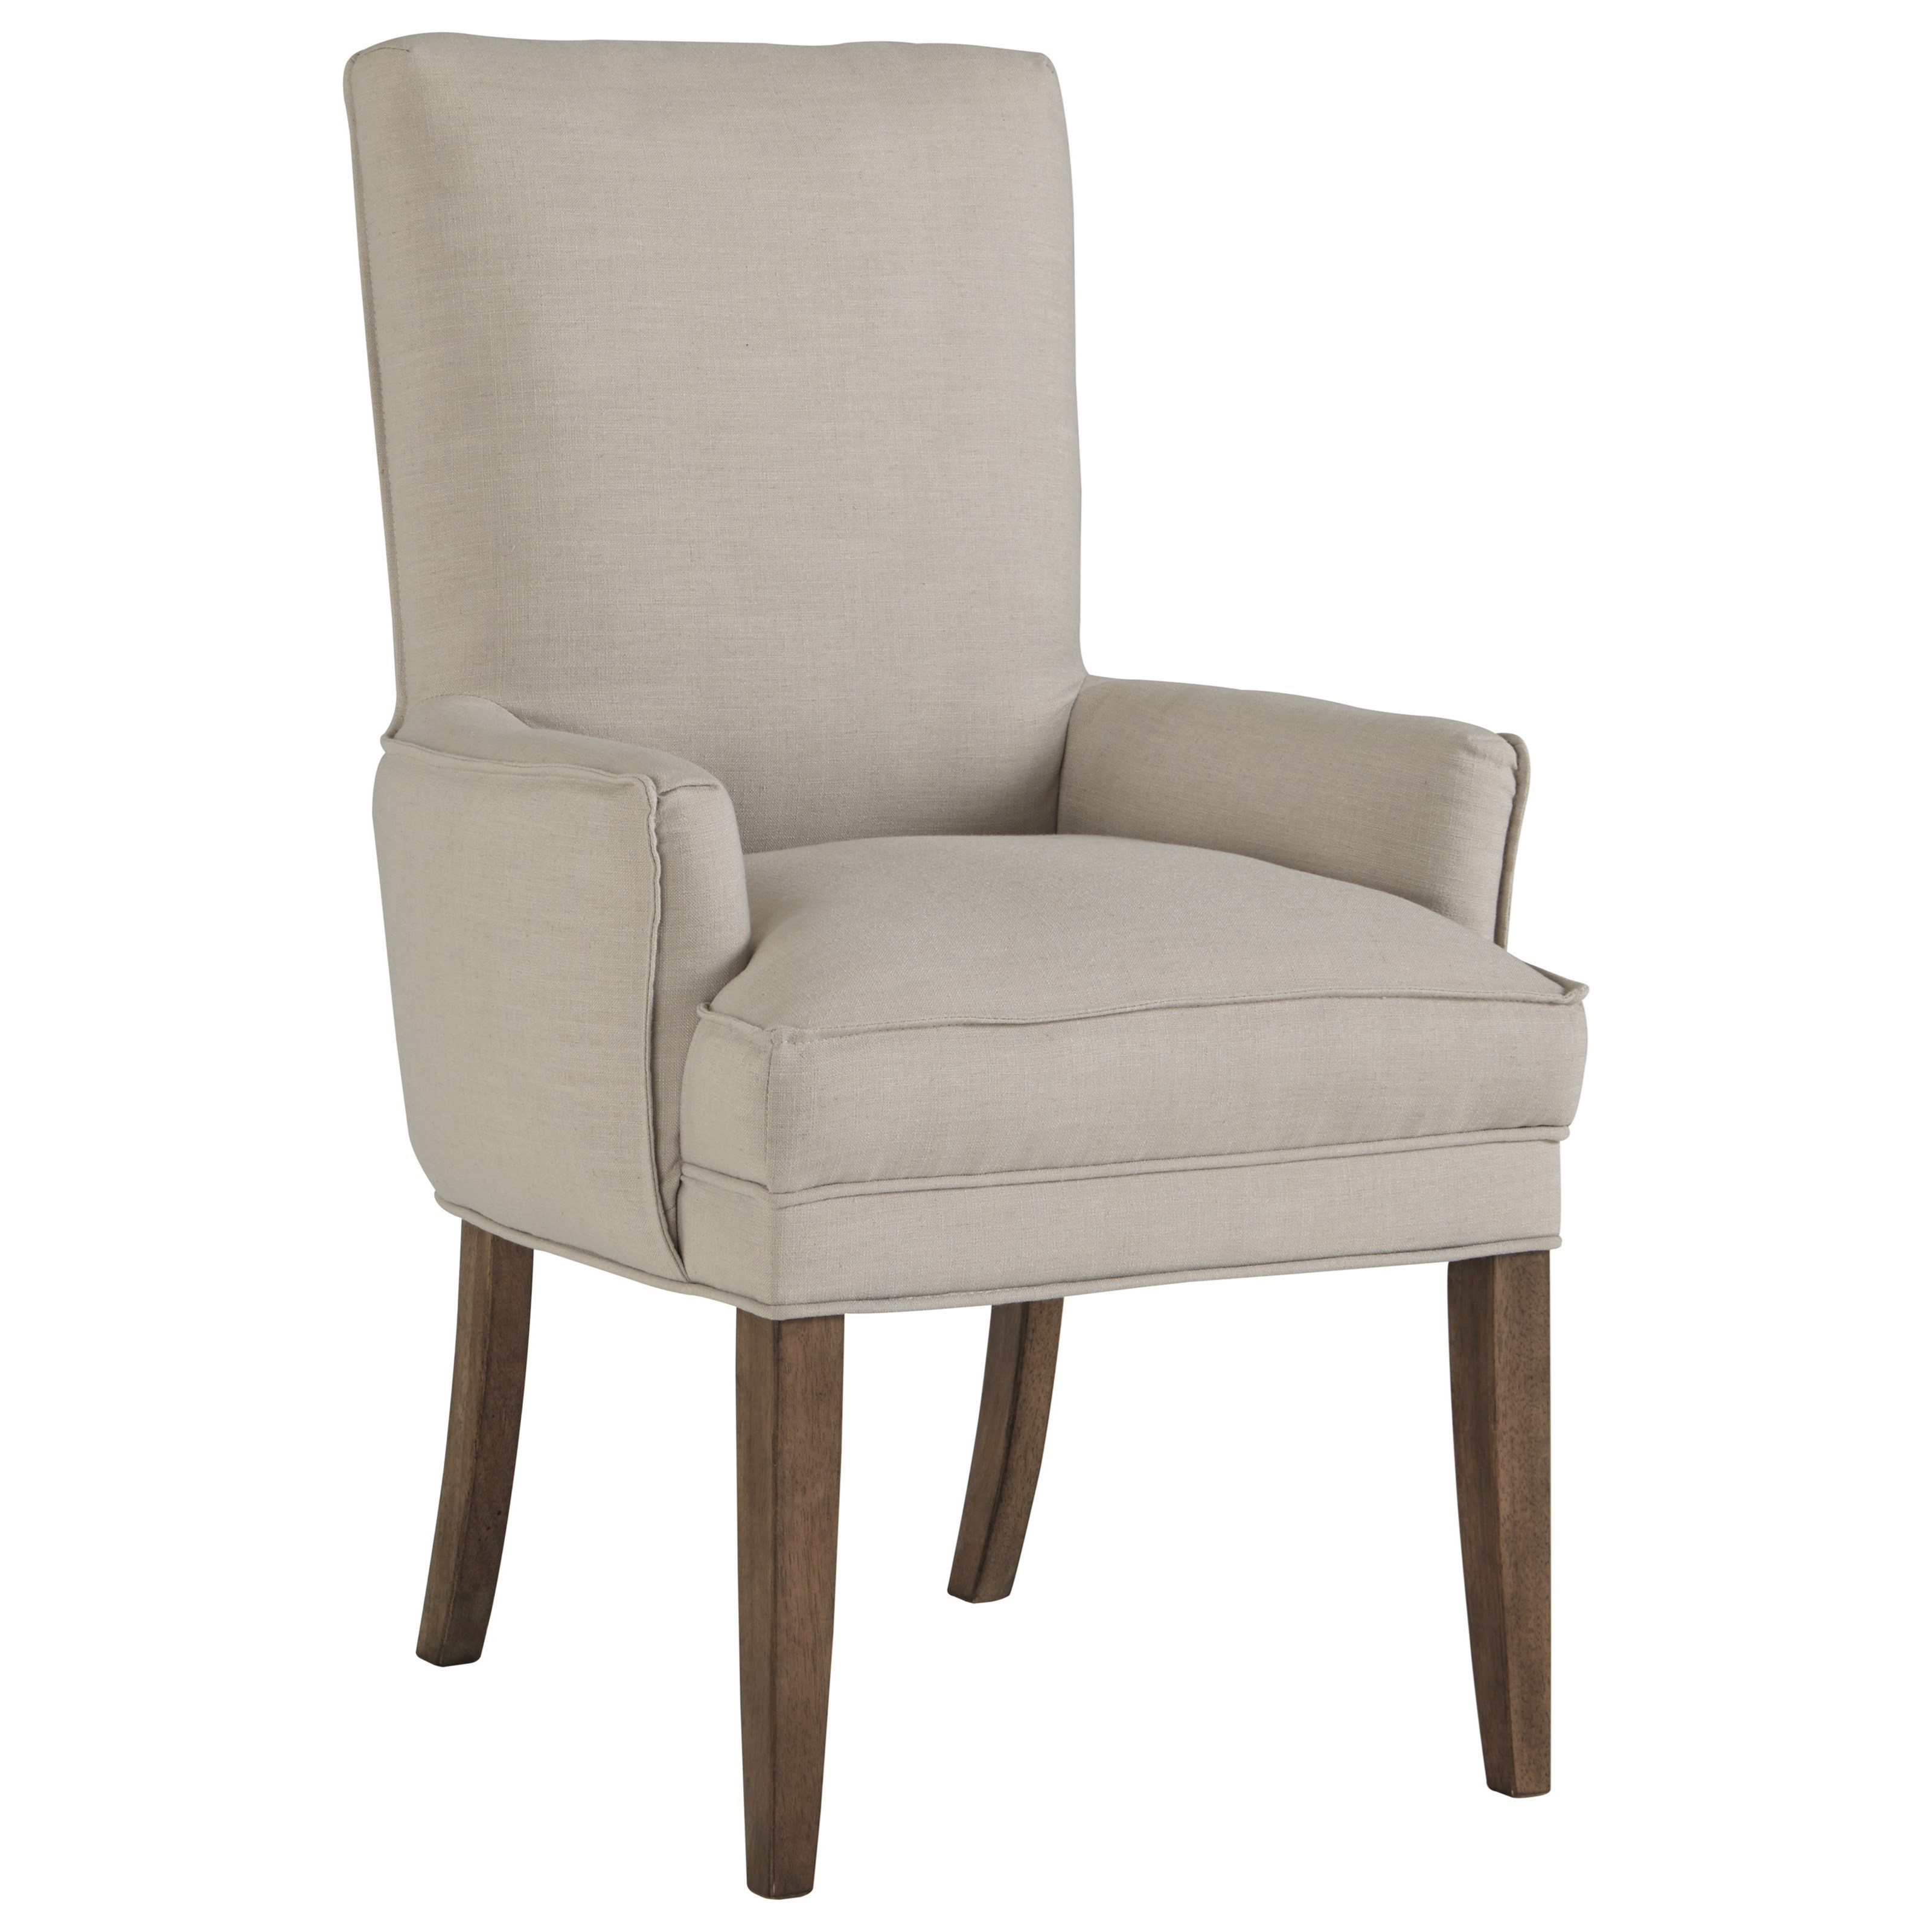 Signature Design by Ashley Grindleburg Dining Upholstered Arm Chair - Item Number: D754-02A